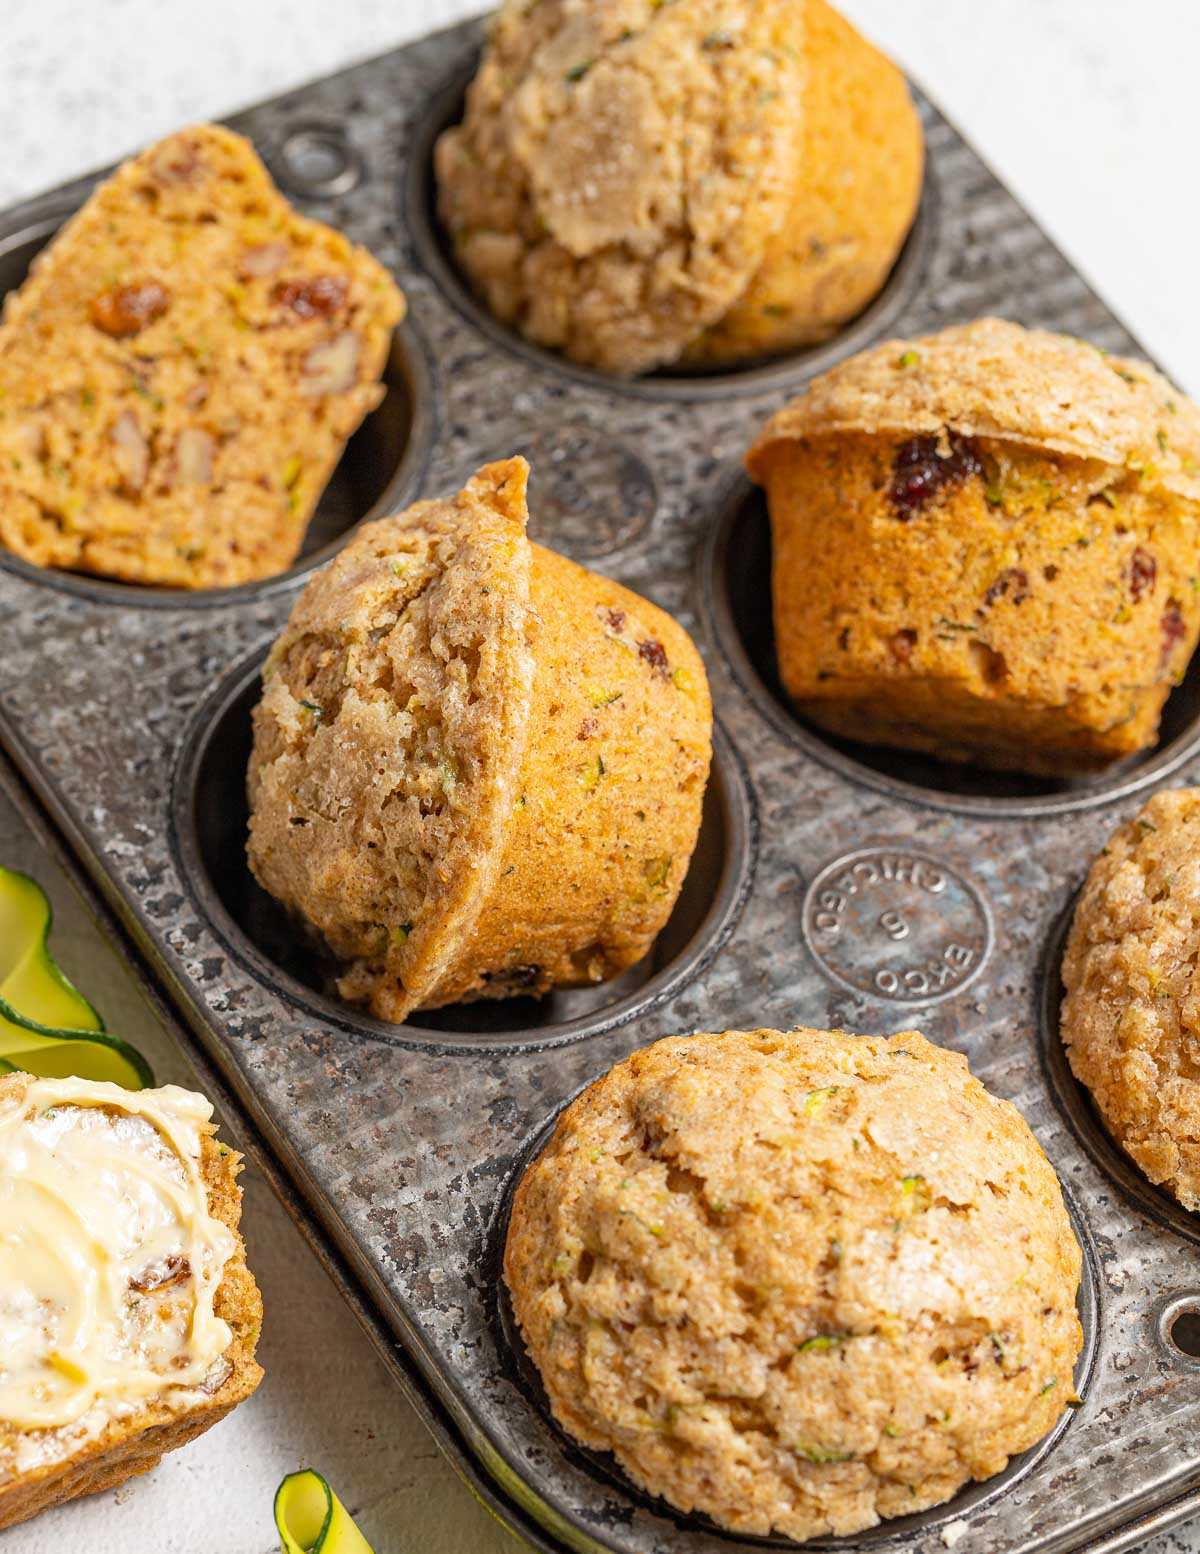 muffins in an antique pan